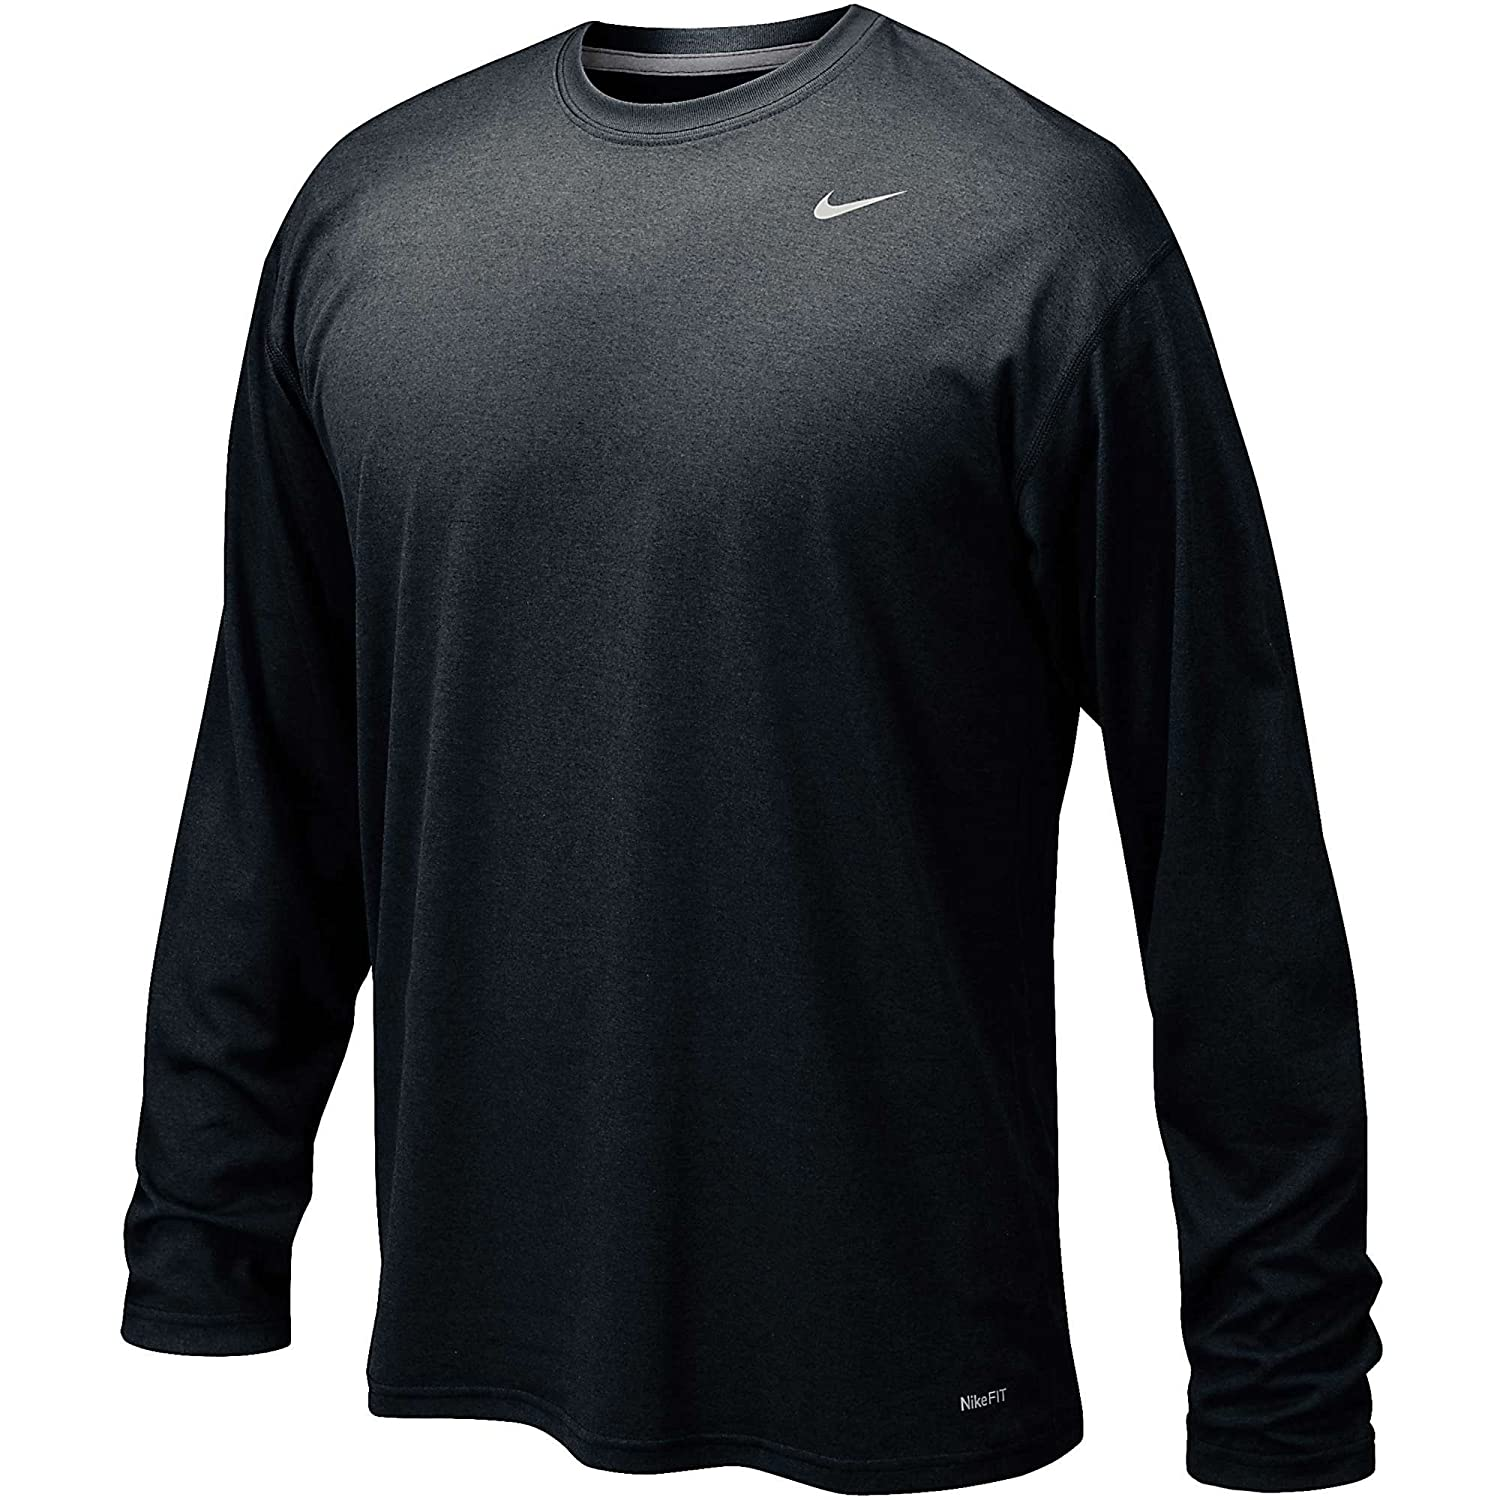 970801cca438e Nike Men's Legend Long Sleeve Tee